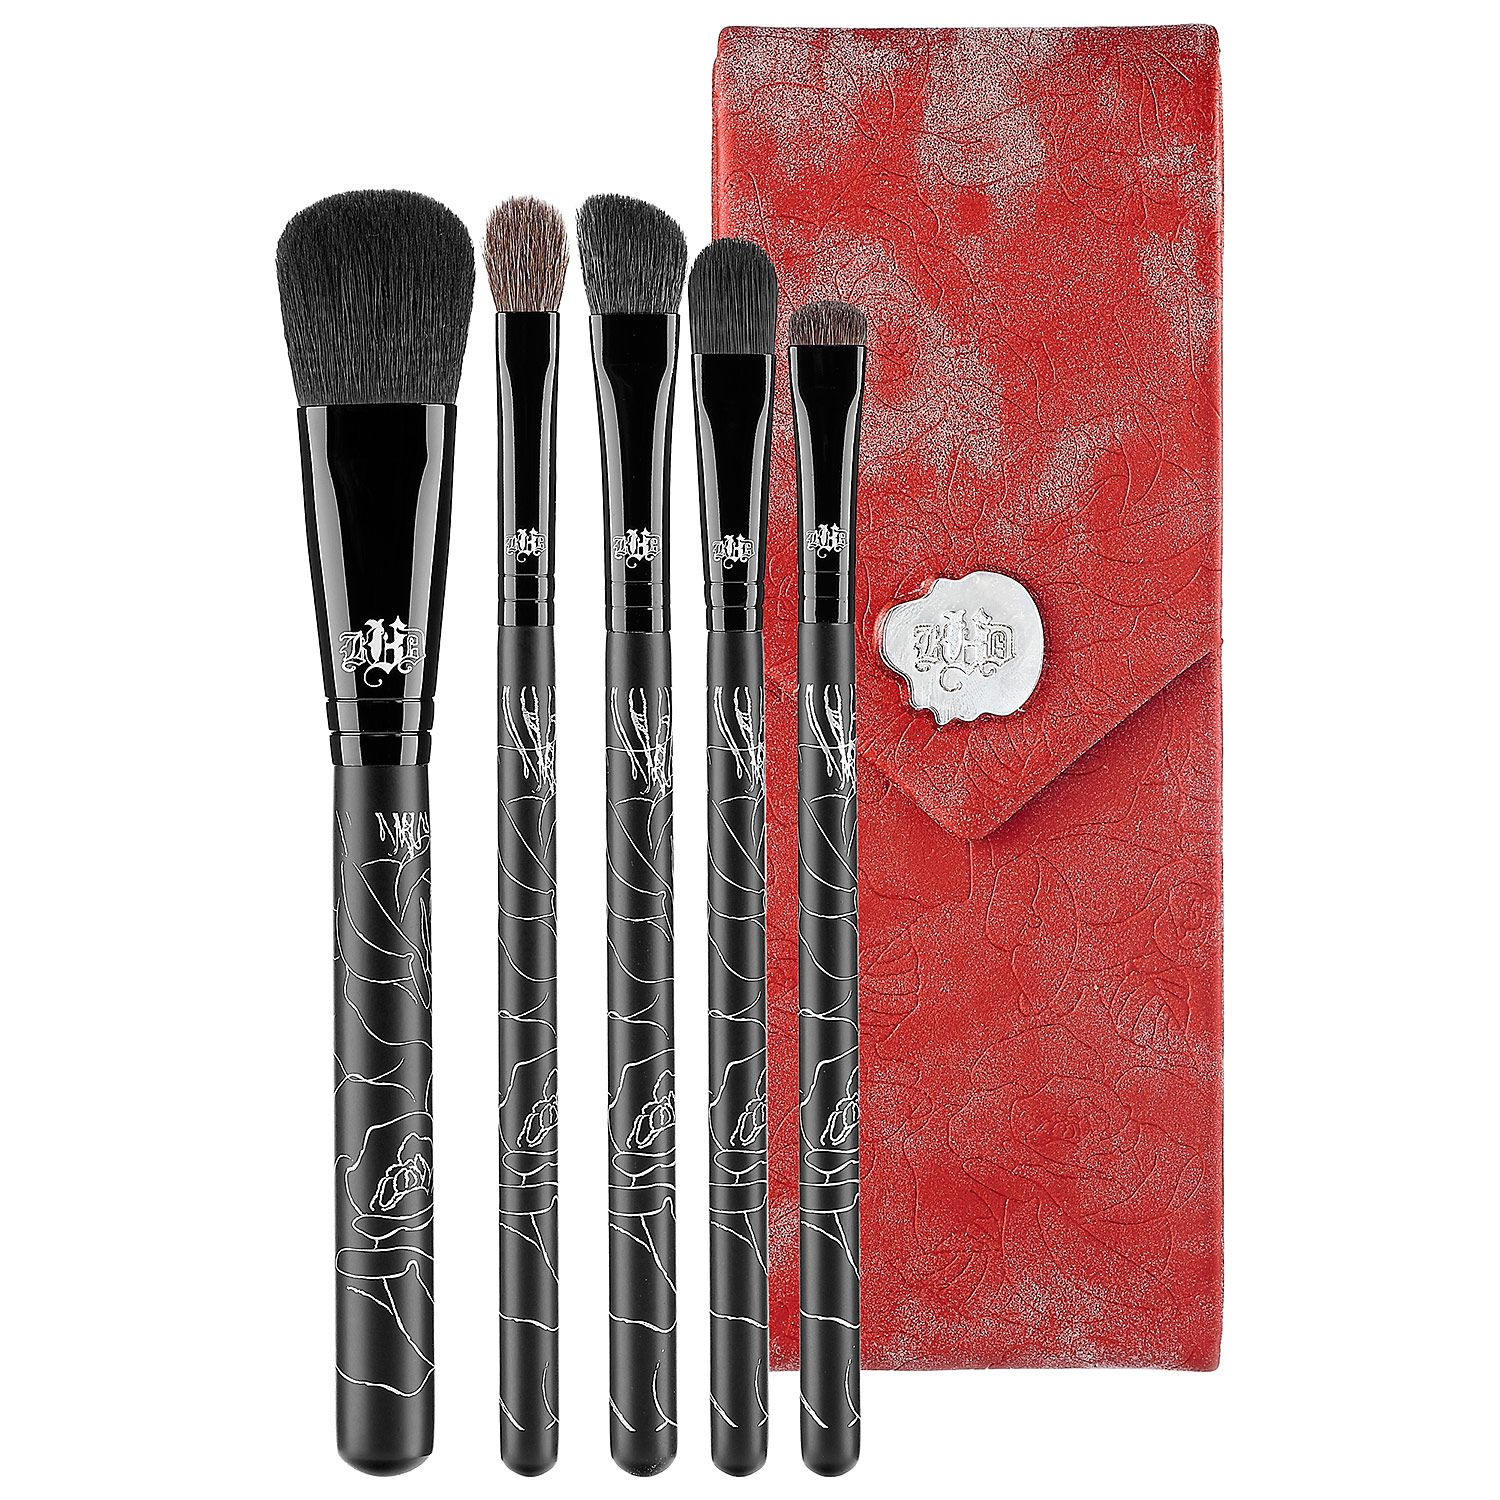 Cheap Oval Makeup Brushes Elizabeth Arden Cosmetics